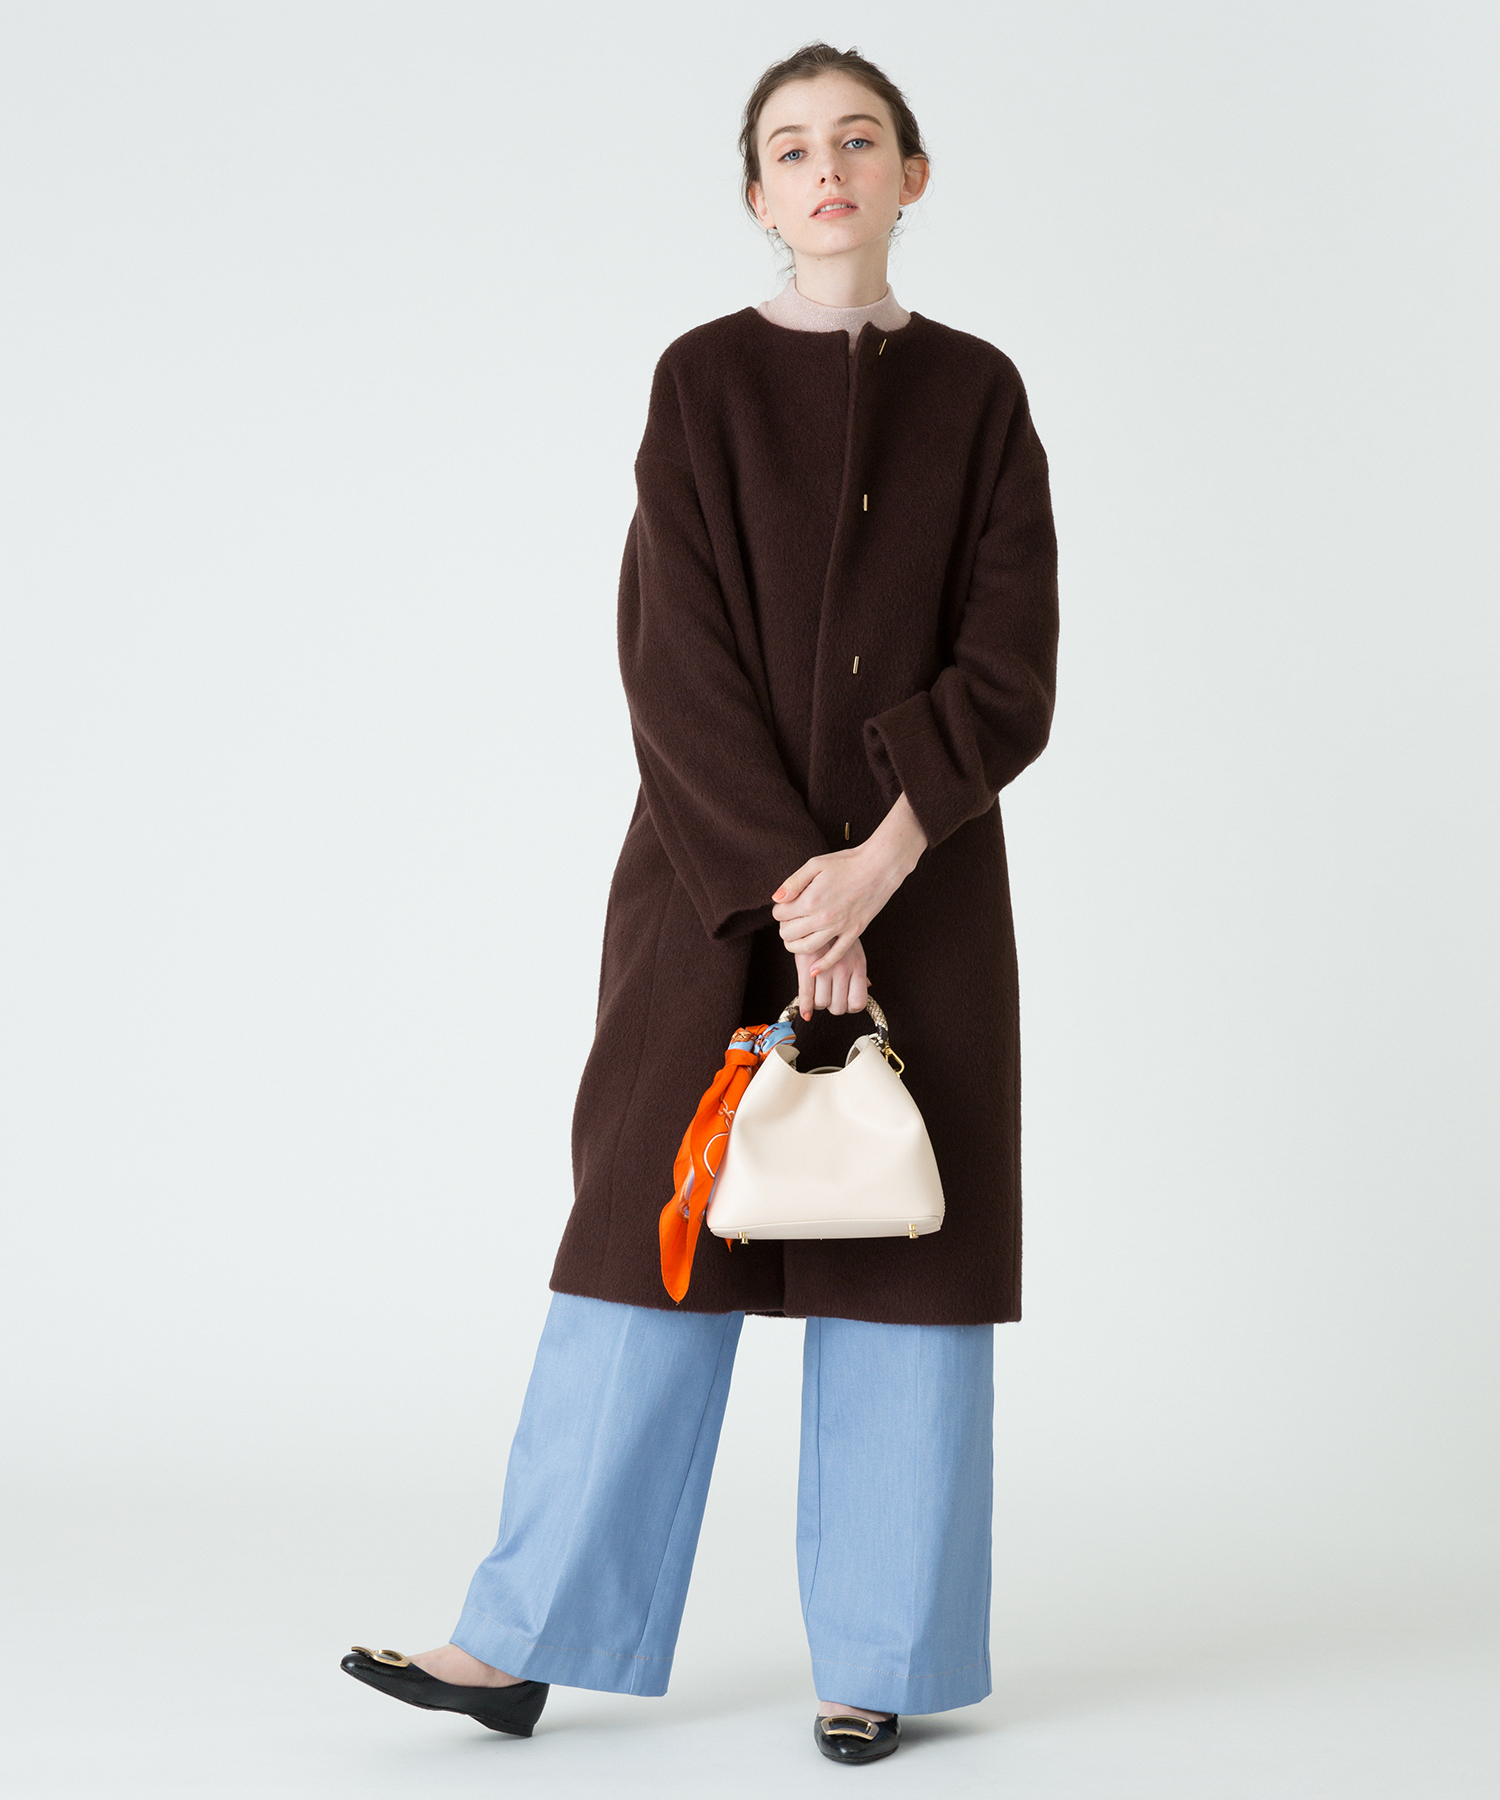 【LOULOU WILLOUGHBY】モヘヤシャギーノーカラーコート